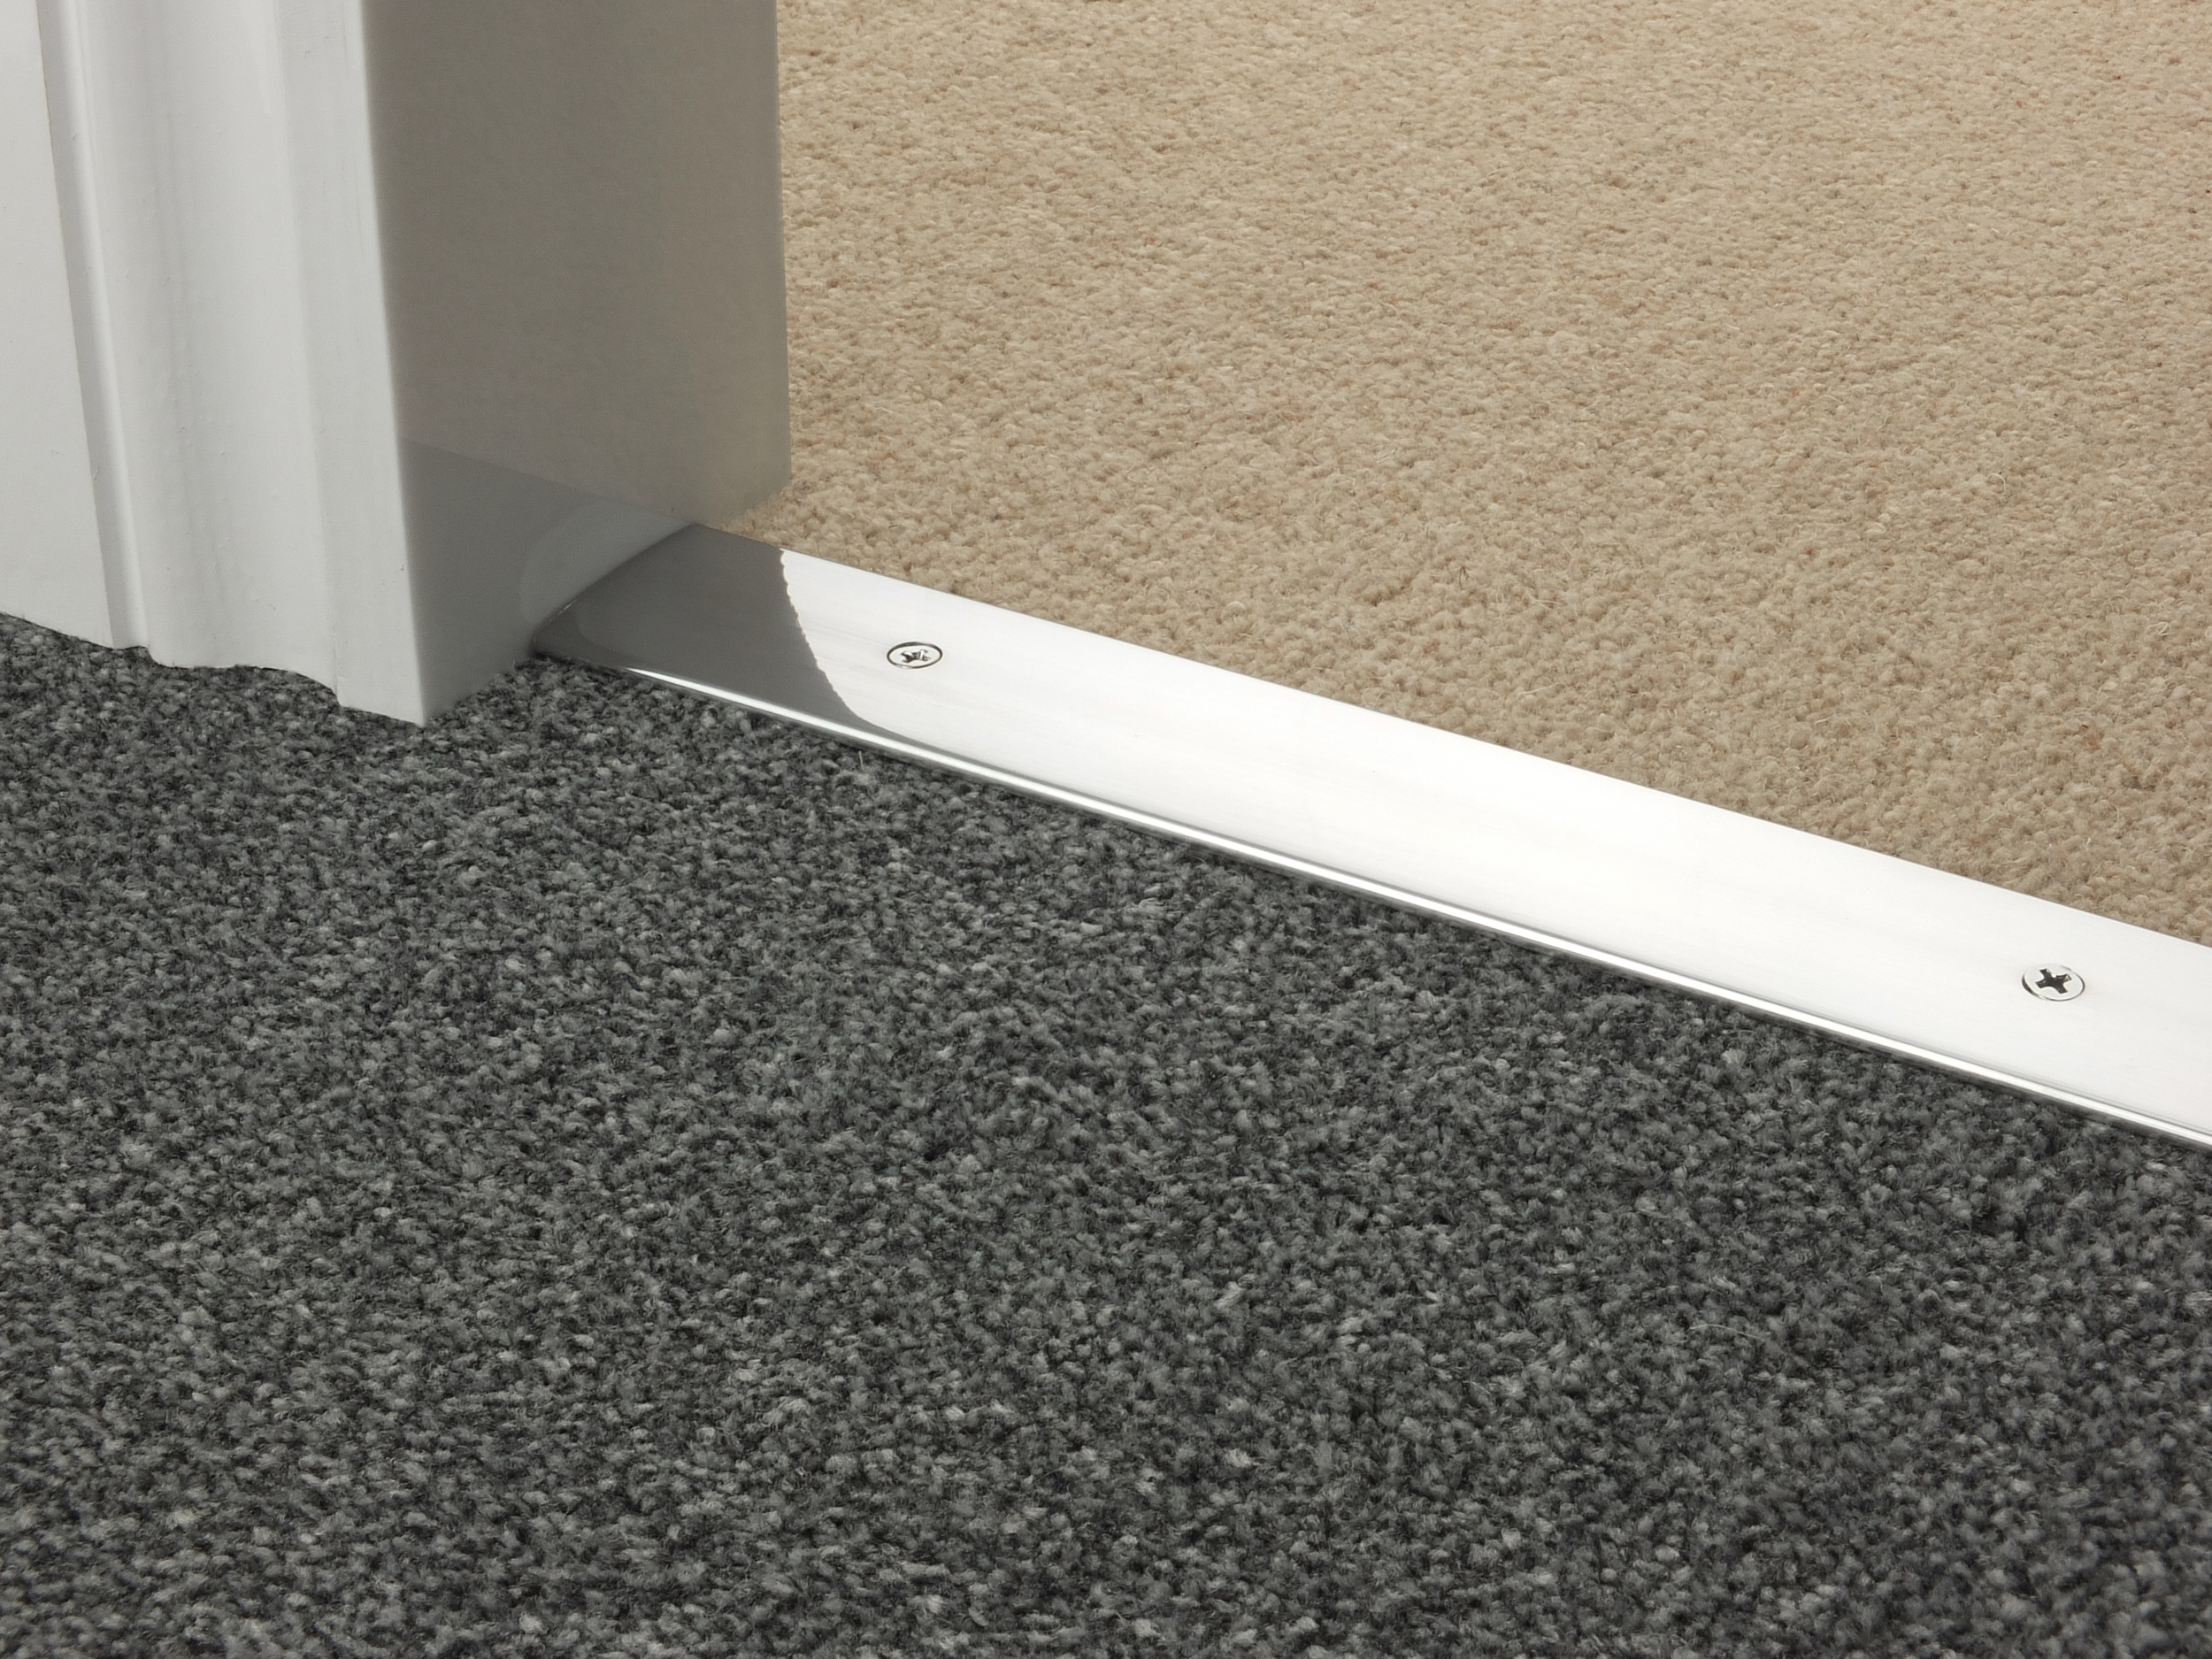 door_bar_brushed_chrome_cover_carpet_carpet.jpg